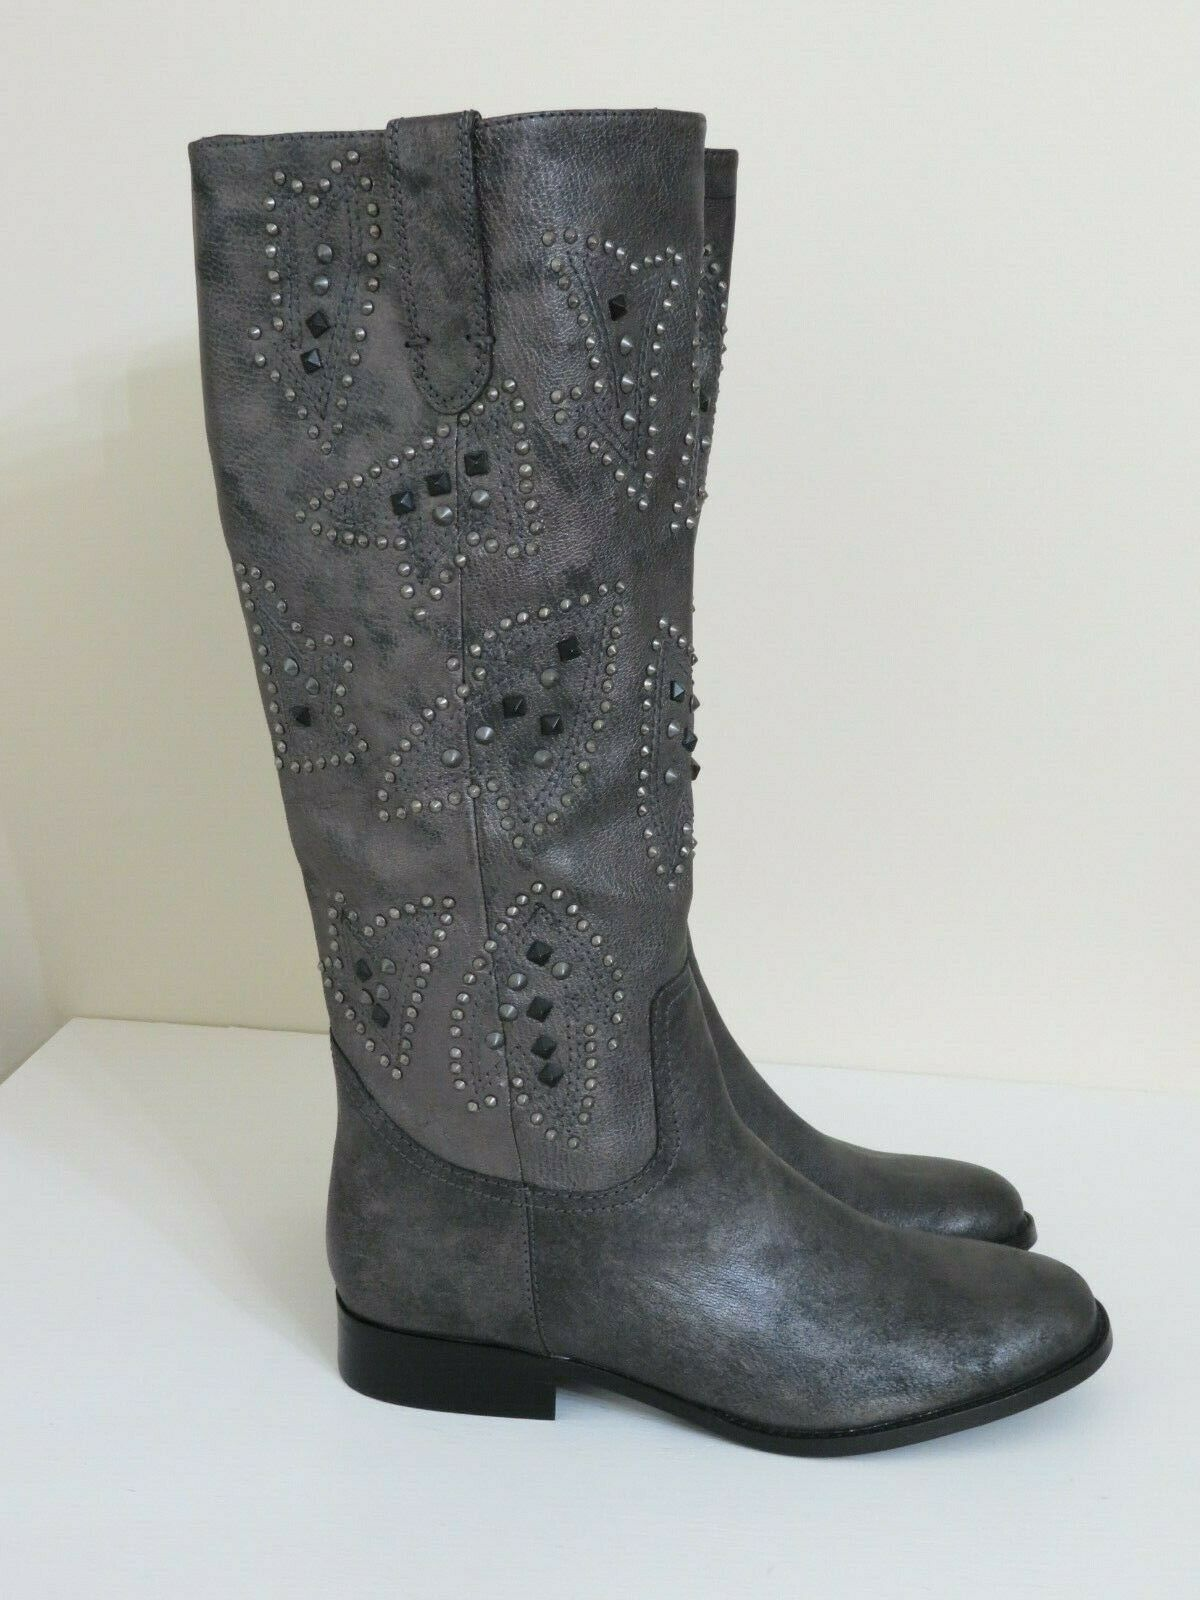 FRYE & CO DISTRESSED PEWTER LEATHER STUDDED PULL ON TALL BOOTS PHOENIX 7.5